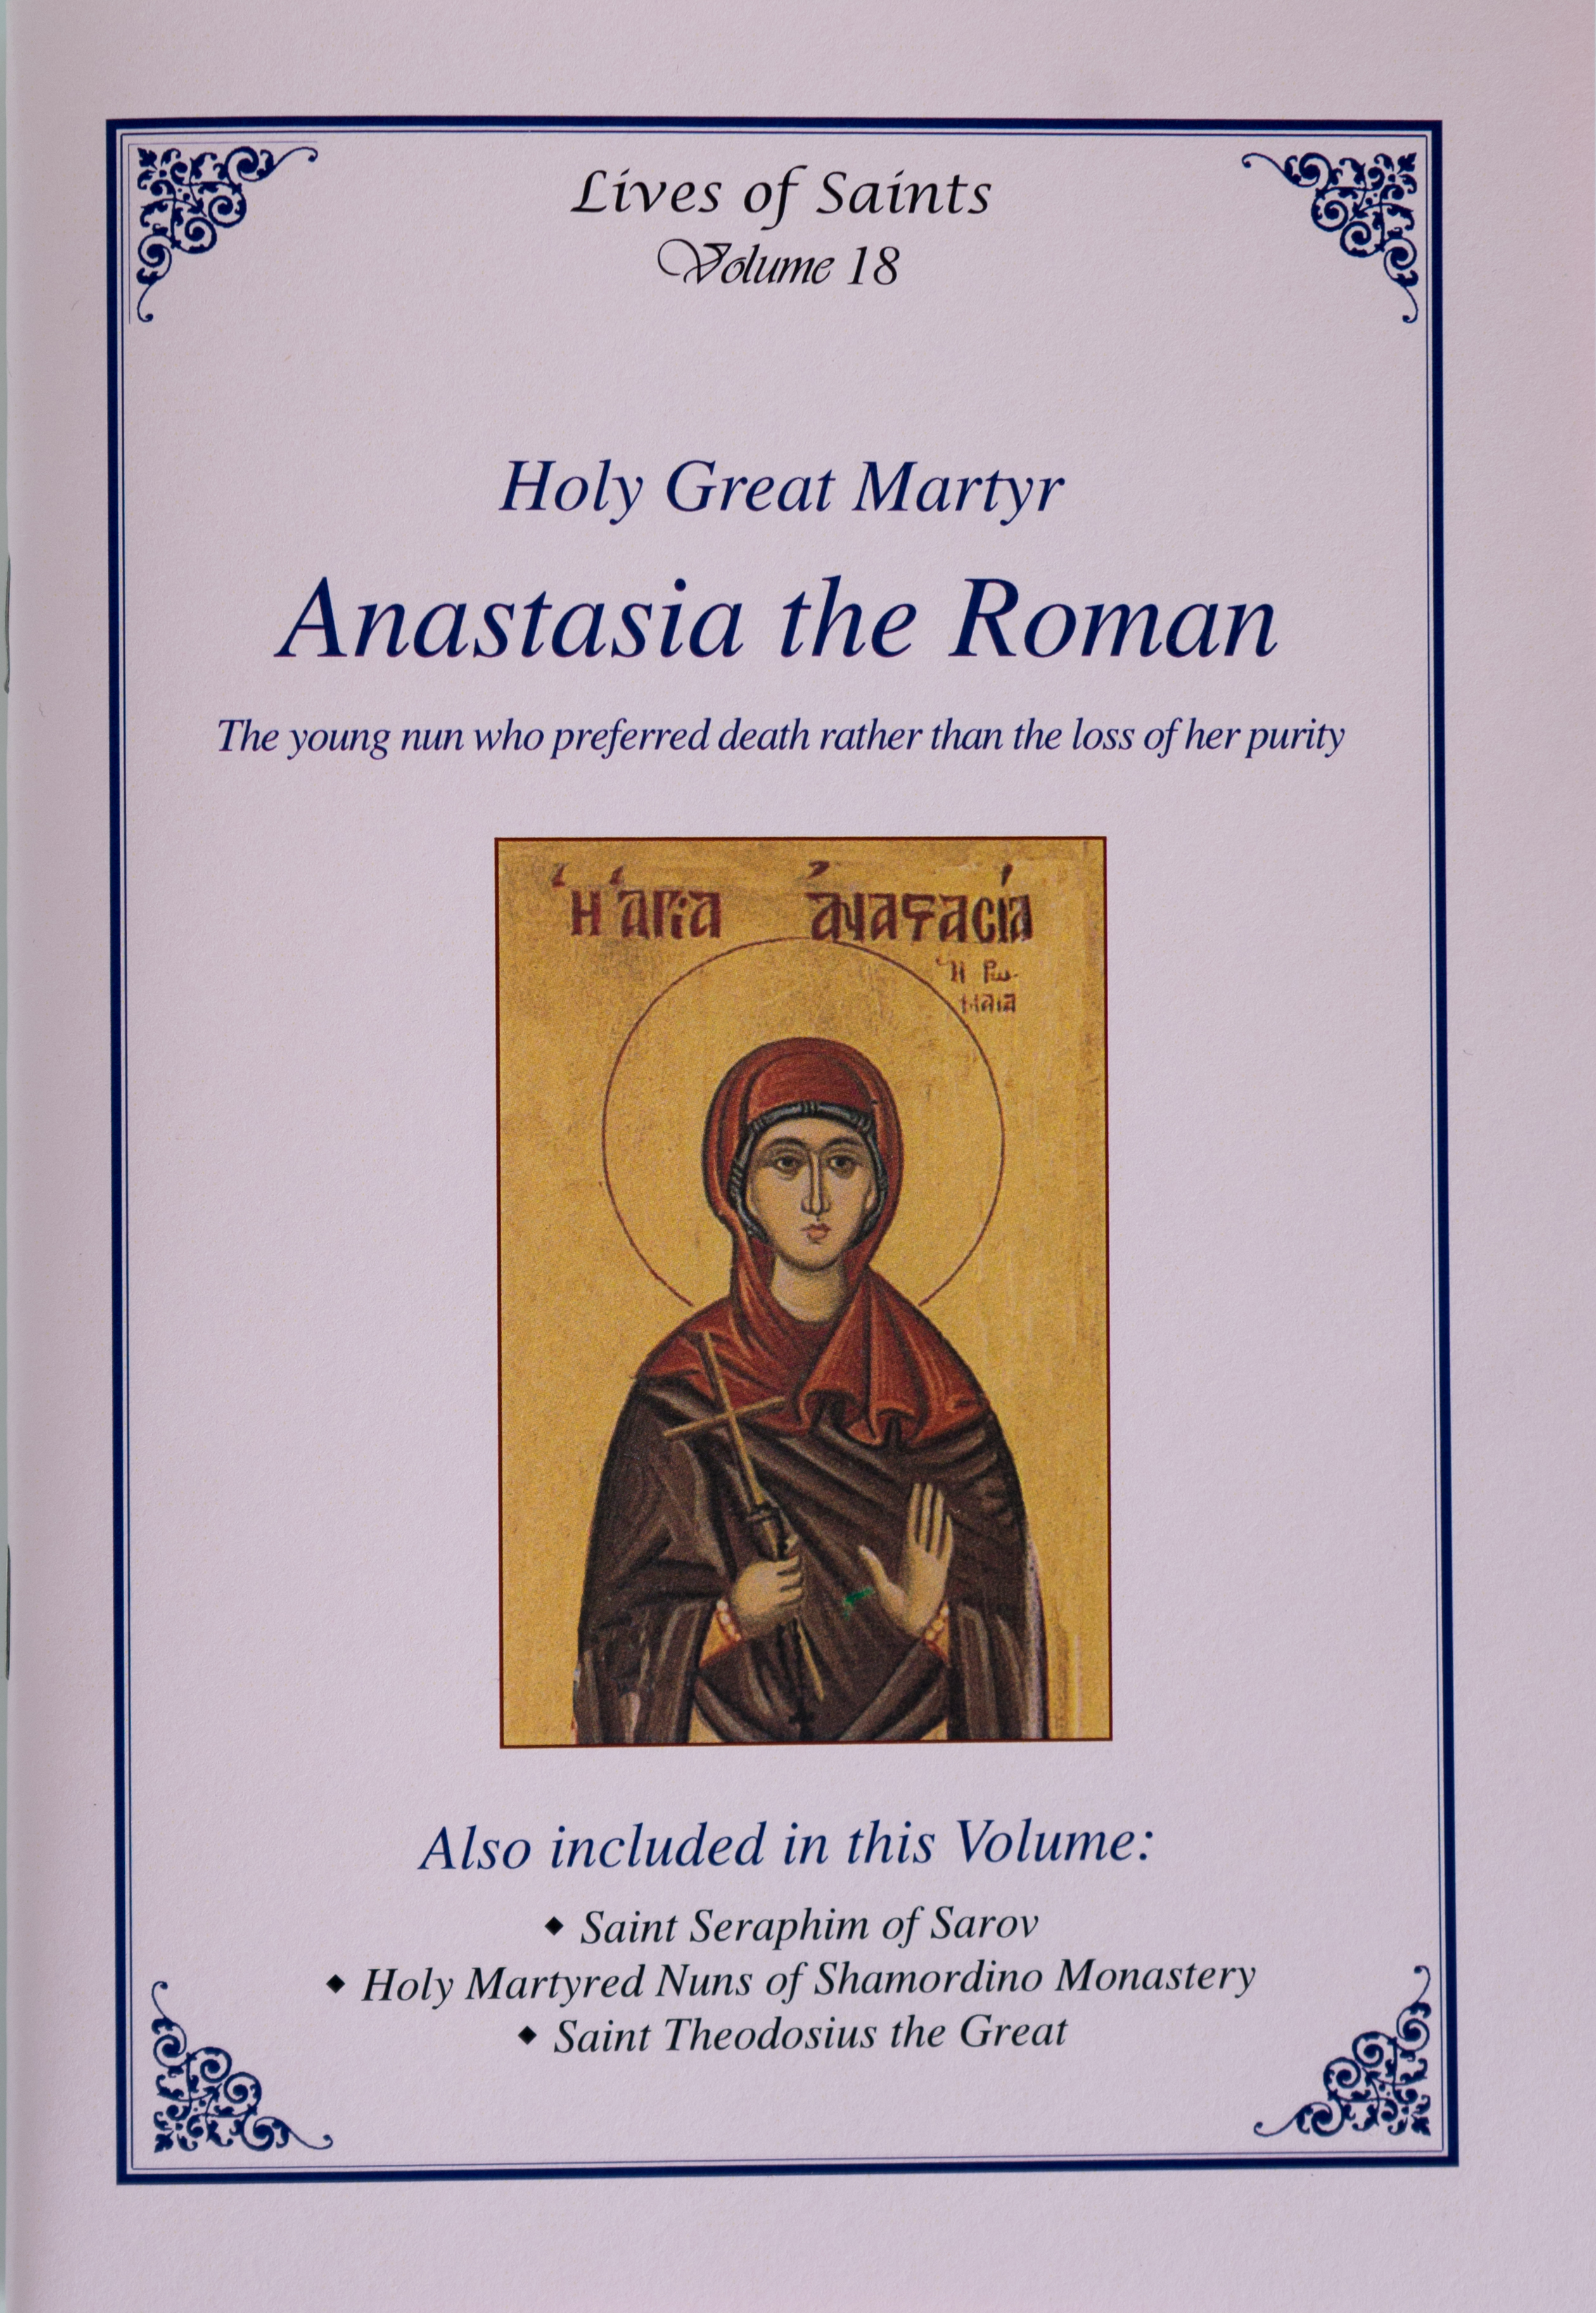 Lives of Saints Vol. 18: Holy Great Martyr Anastasia the Roman